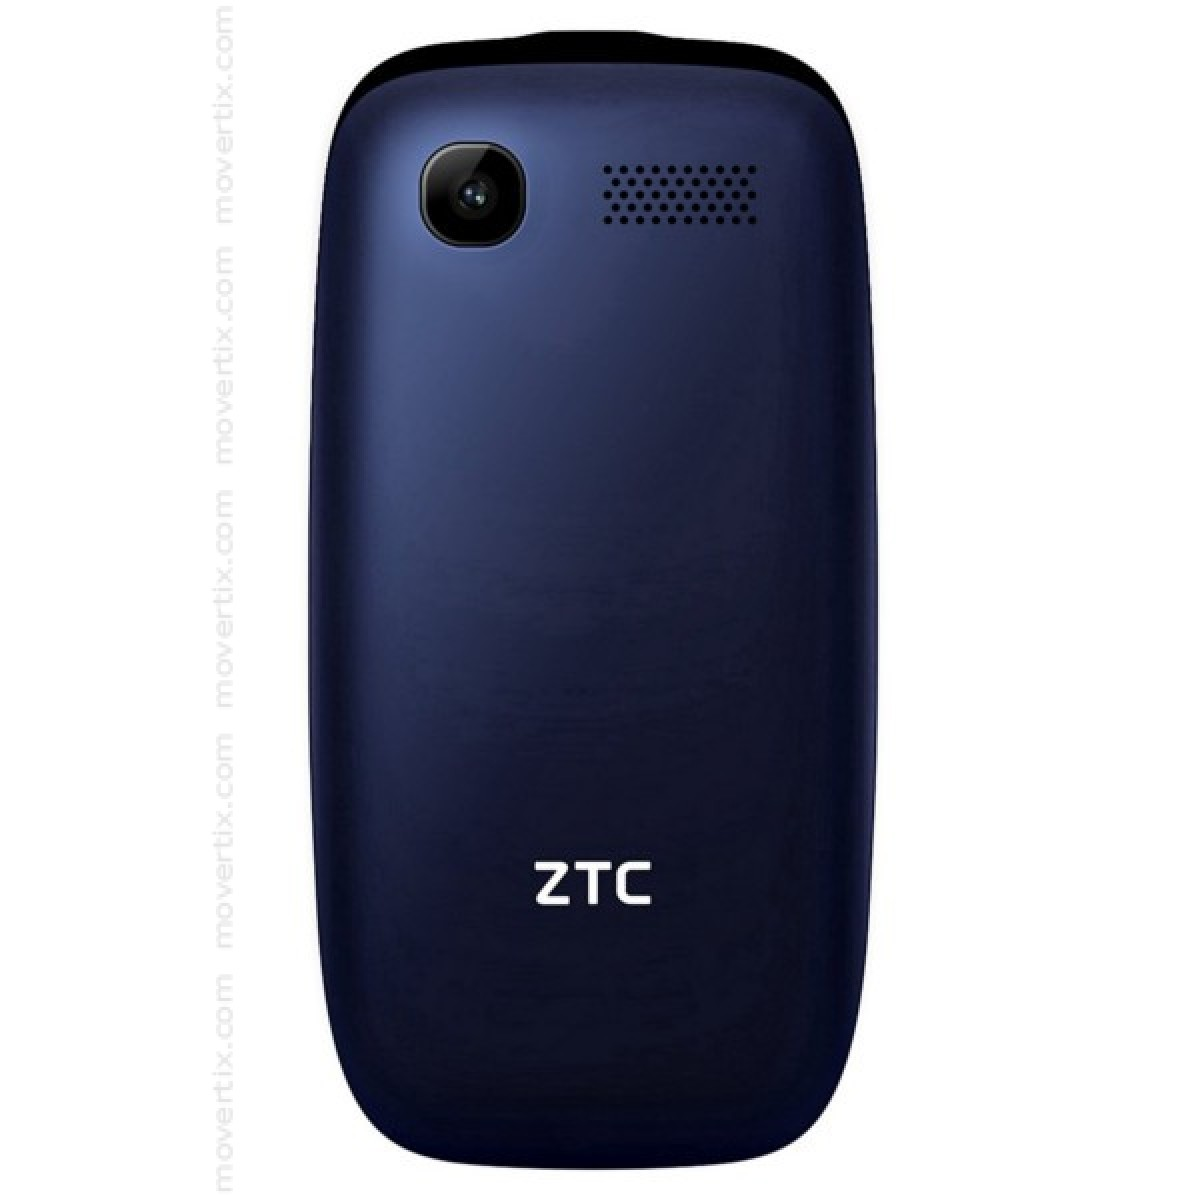 Moviles Libres Blackberry Ztc C205 En Azul 5605076557707 Movertix Tienda De